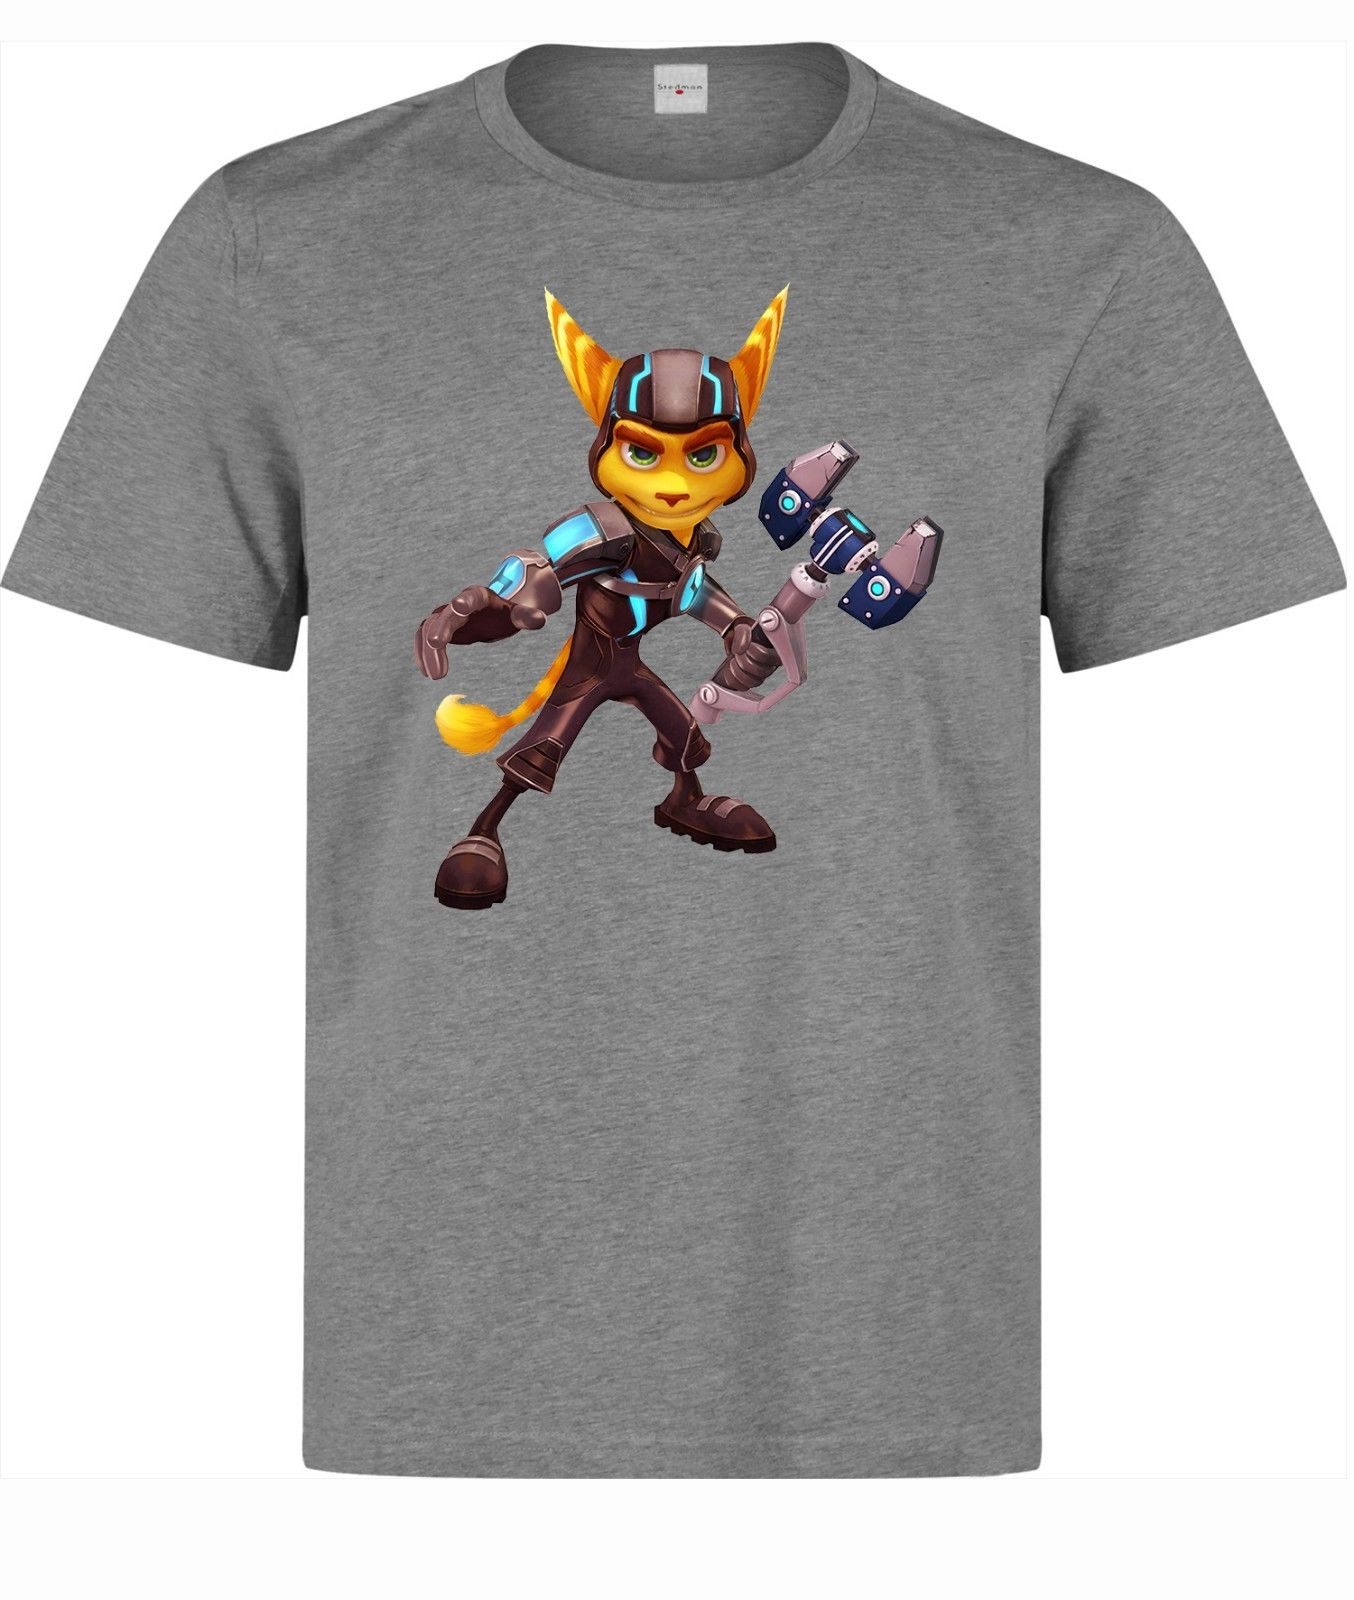 Ratchet And Clank Game Character Ratchet men's (woman's available) grey t shirtCartoon t shirt men Unisex New Fashion tshirt image